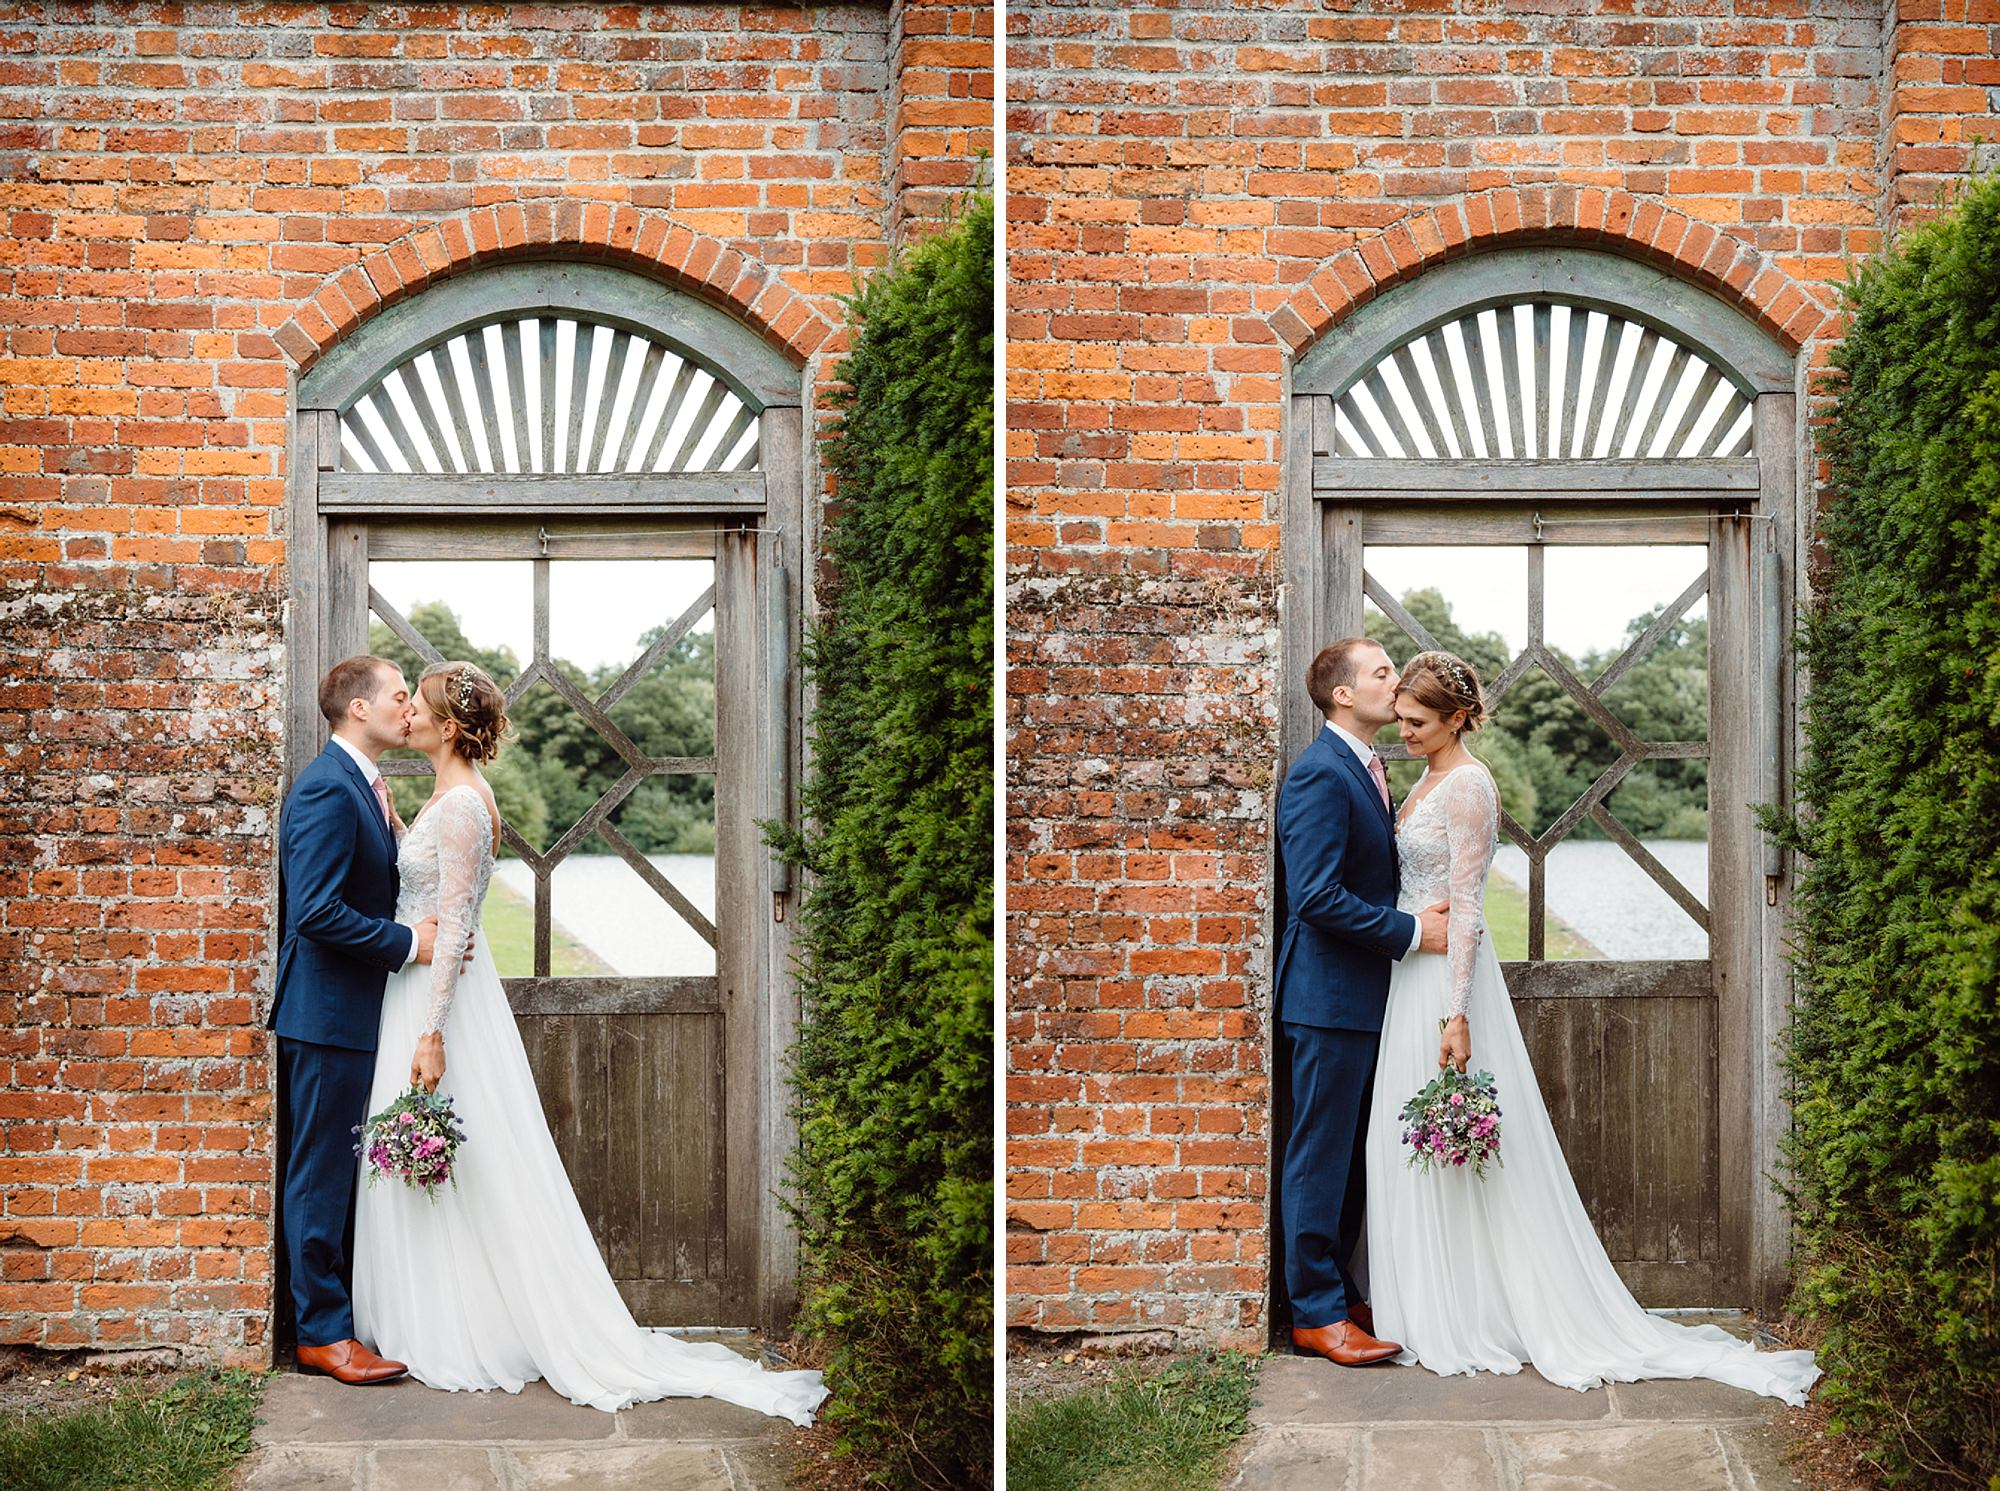 Marks Hall Estate wedding photography bride and groom kiss in doorway